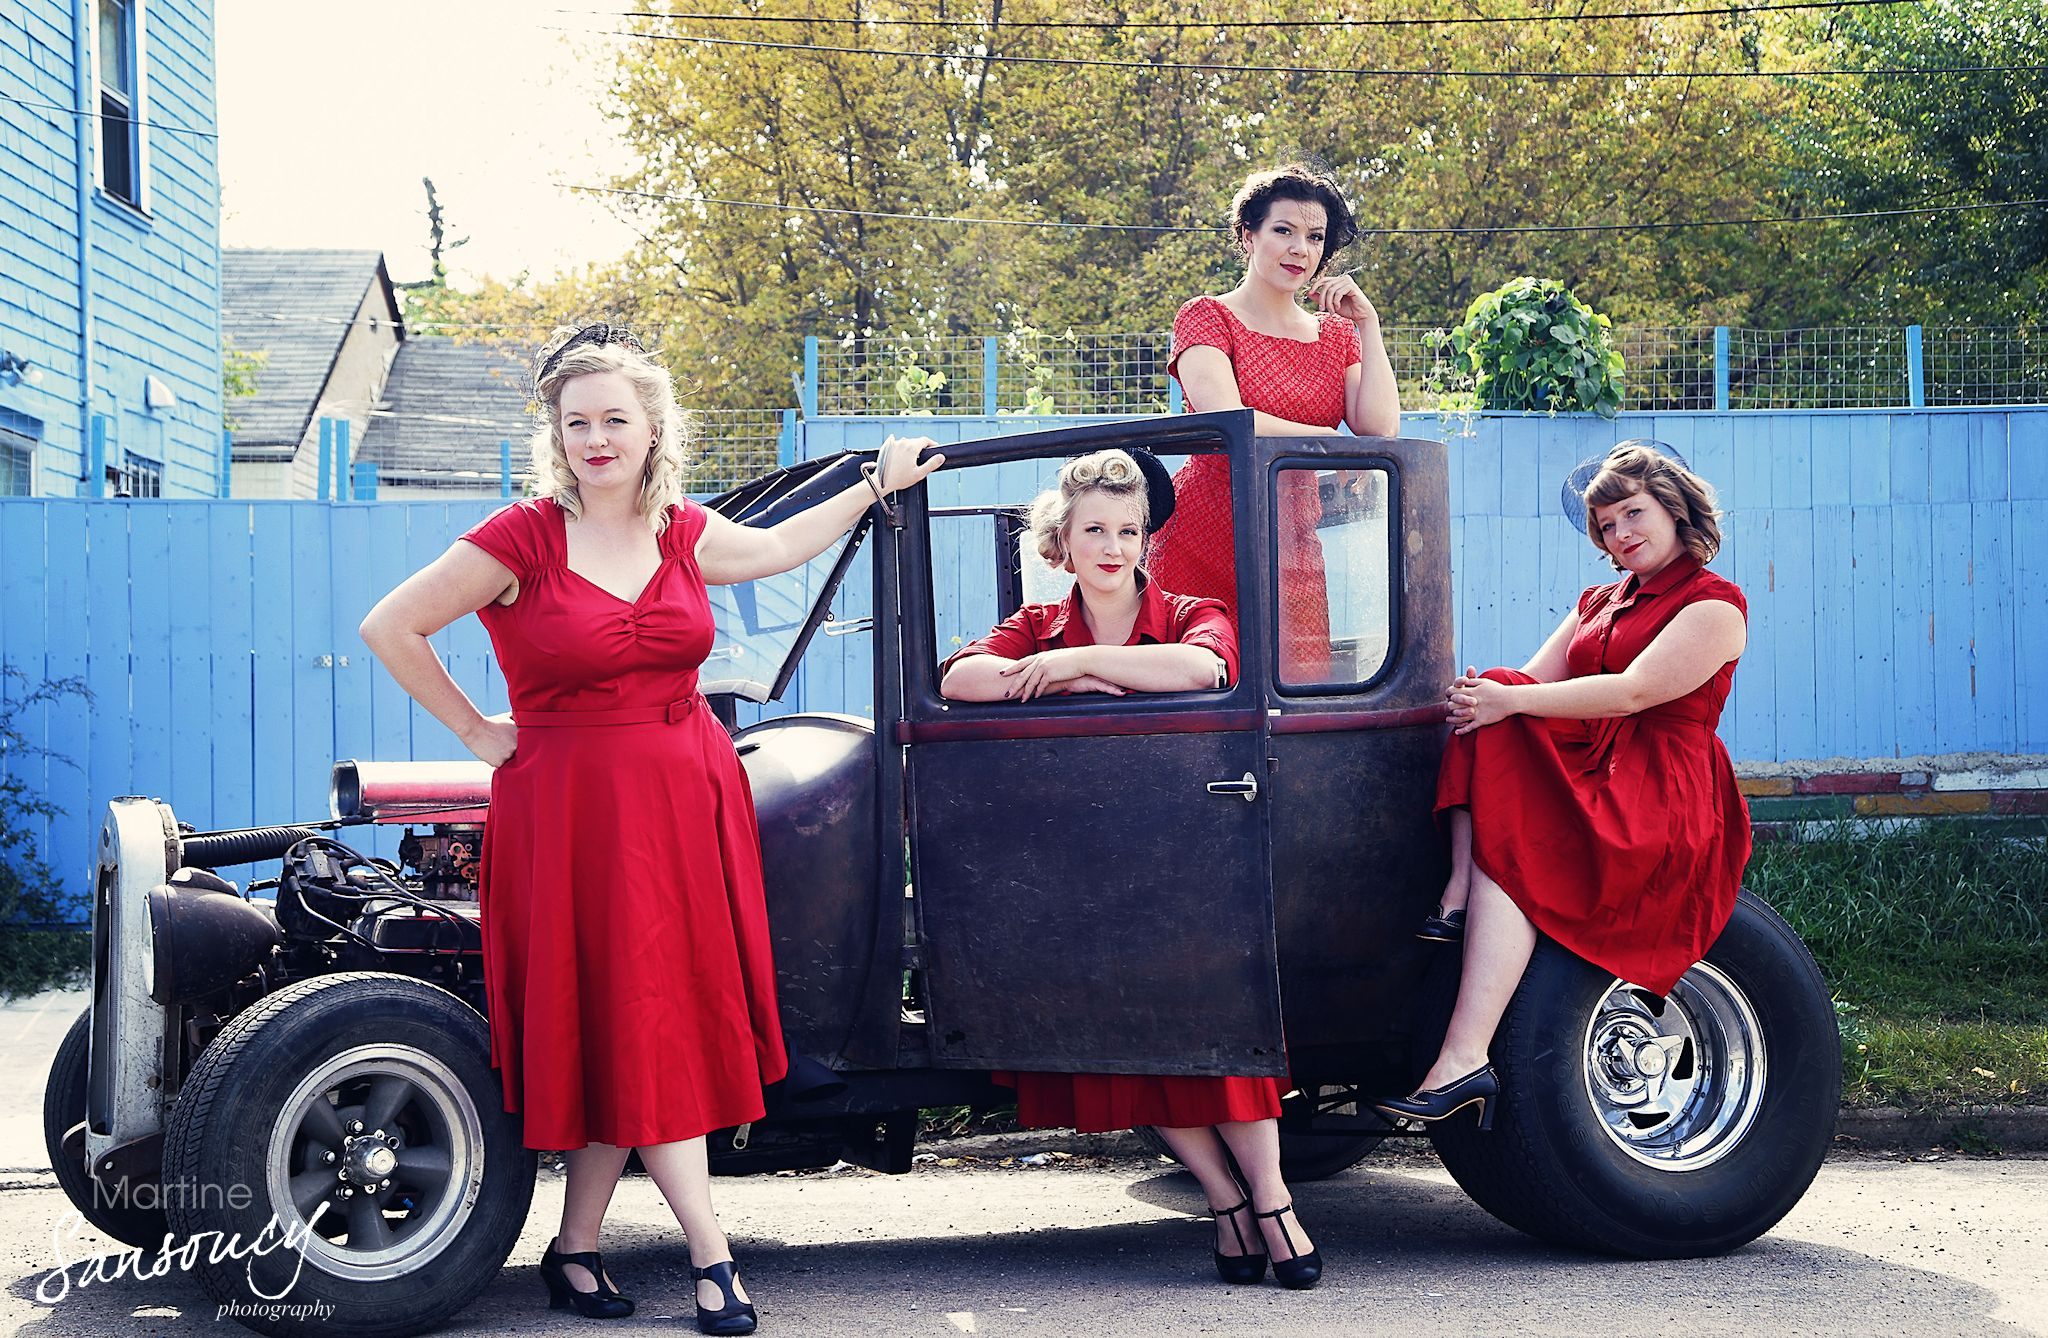 Rosie & the Riveters (L-R): Farideh Olsen, Allyson Reigh, Alexis Normand, Melissa Nygren ready to hit the road in vintage style.